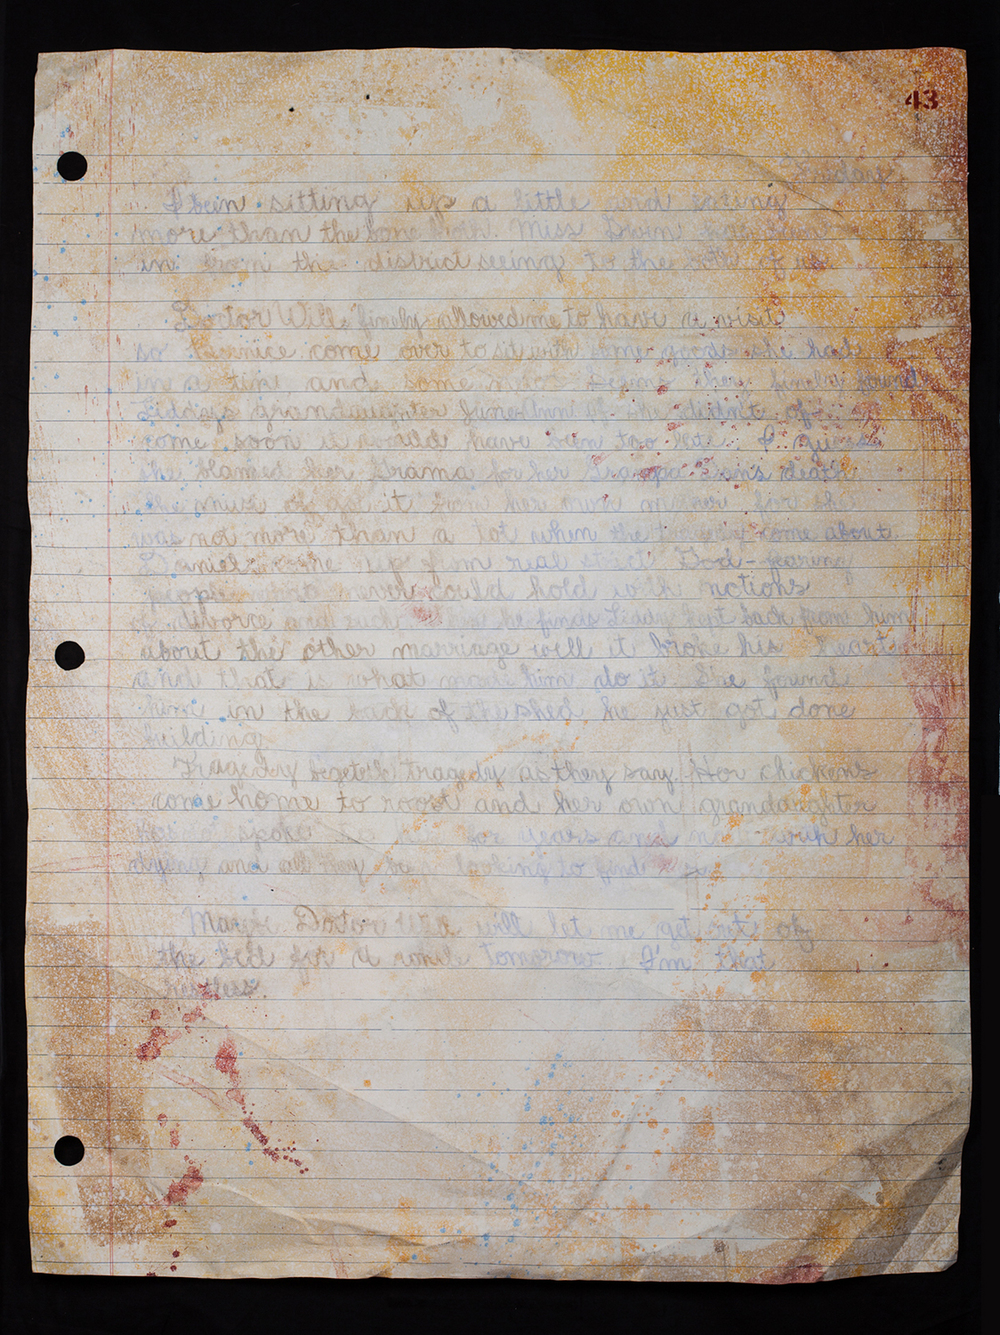 No. 7 (triptych): Three Stapled pages from Myrna's Diary - Pgs. 41,42,43.